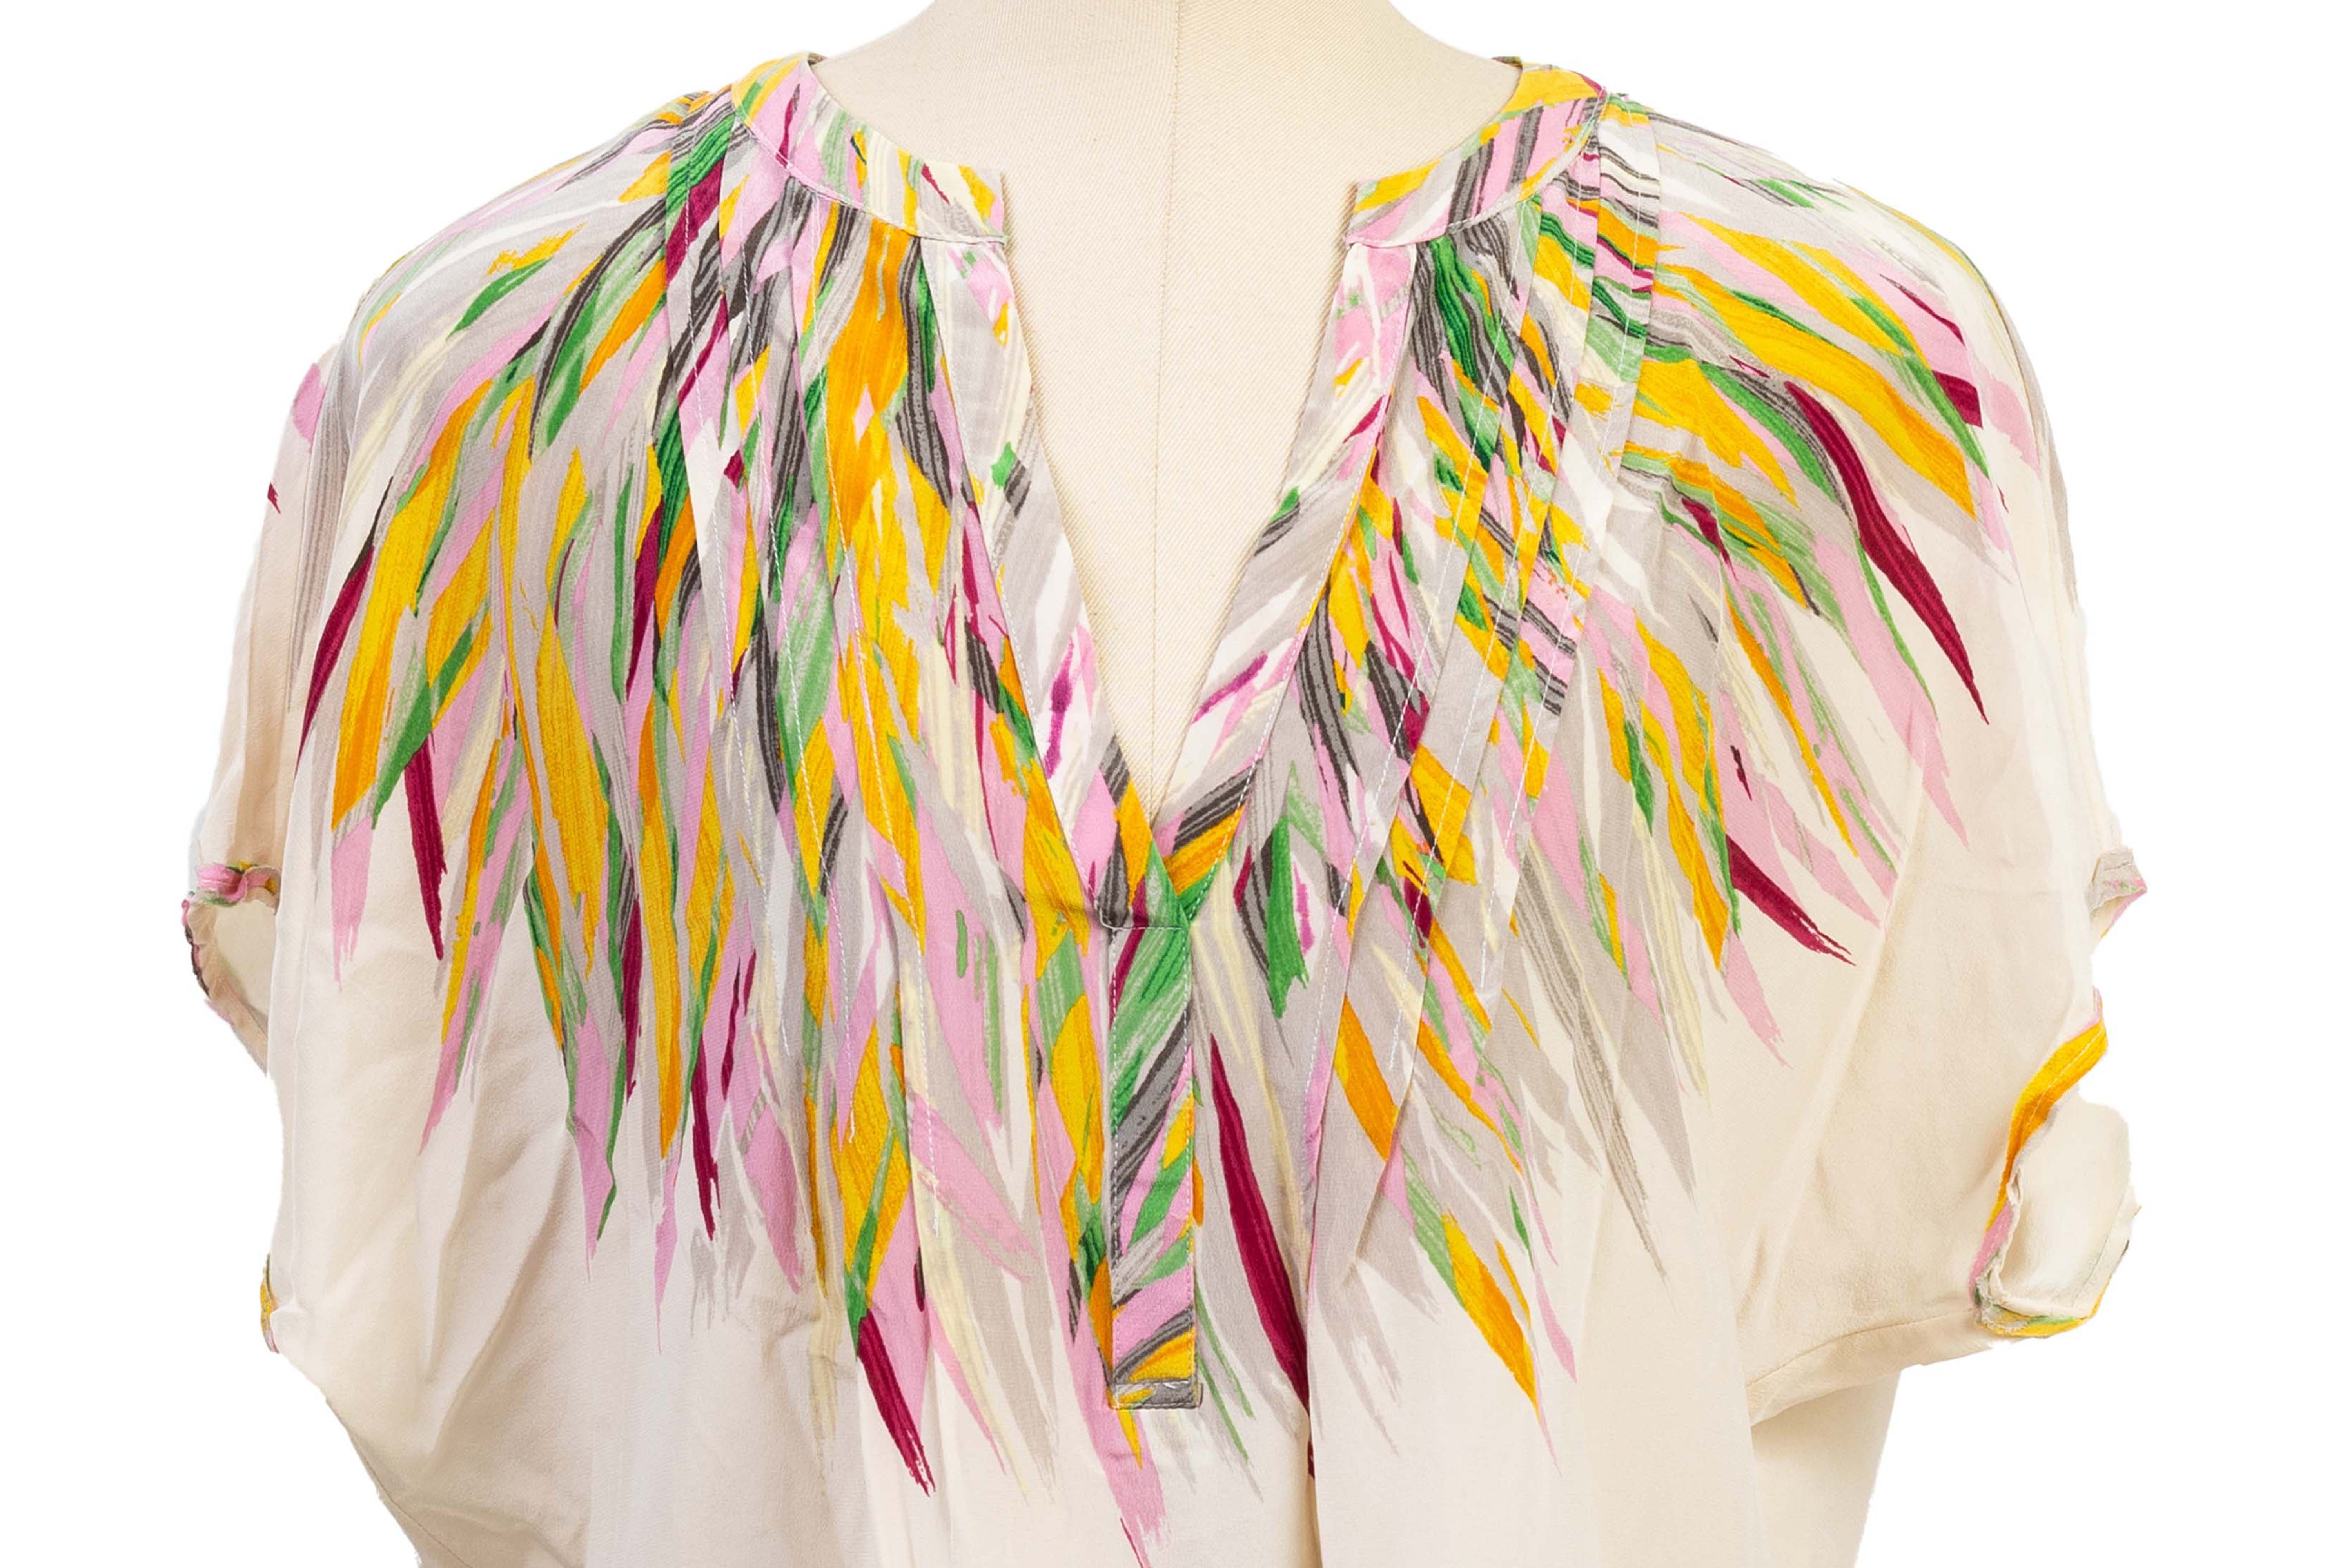 TWO MULTICOLOURED DEEP V BLOUSE - Image 2 of 5